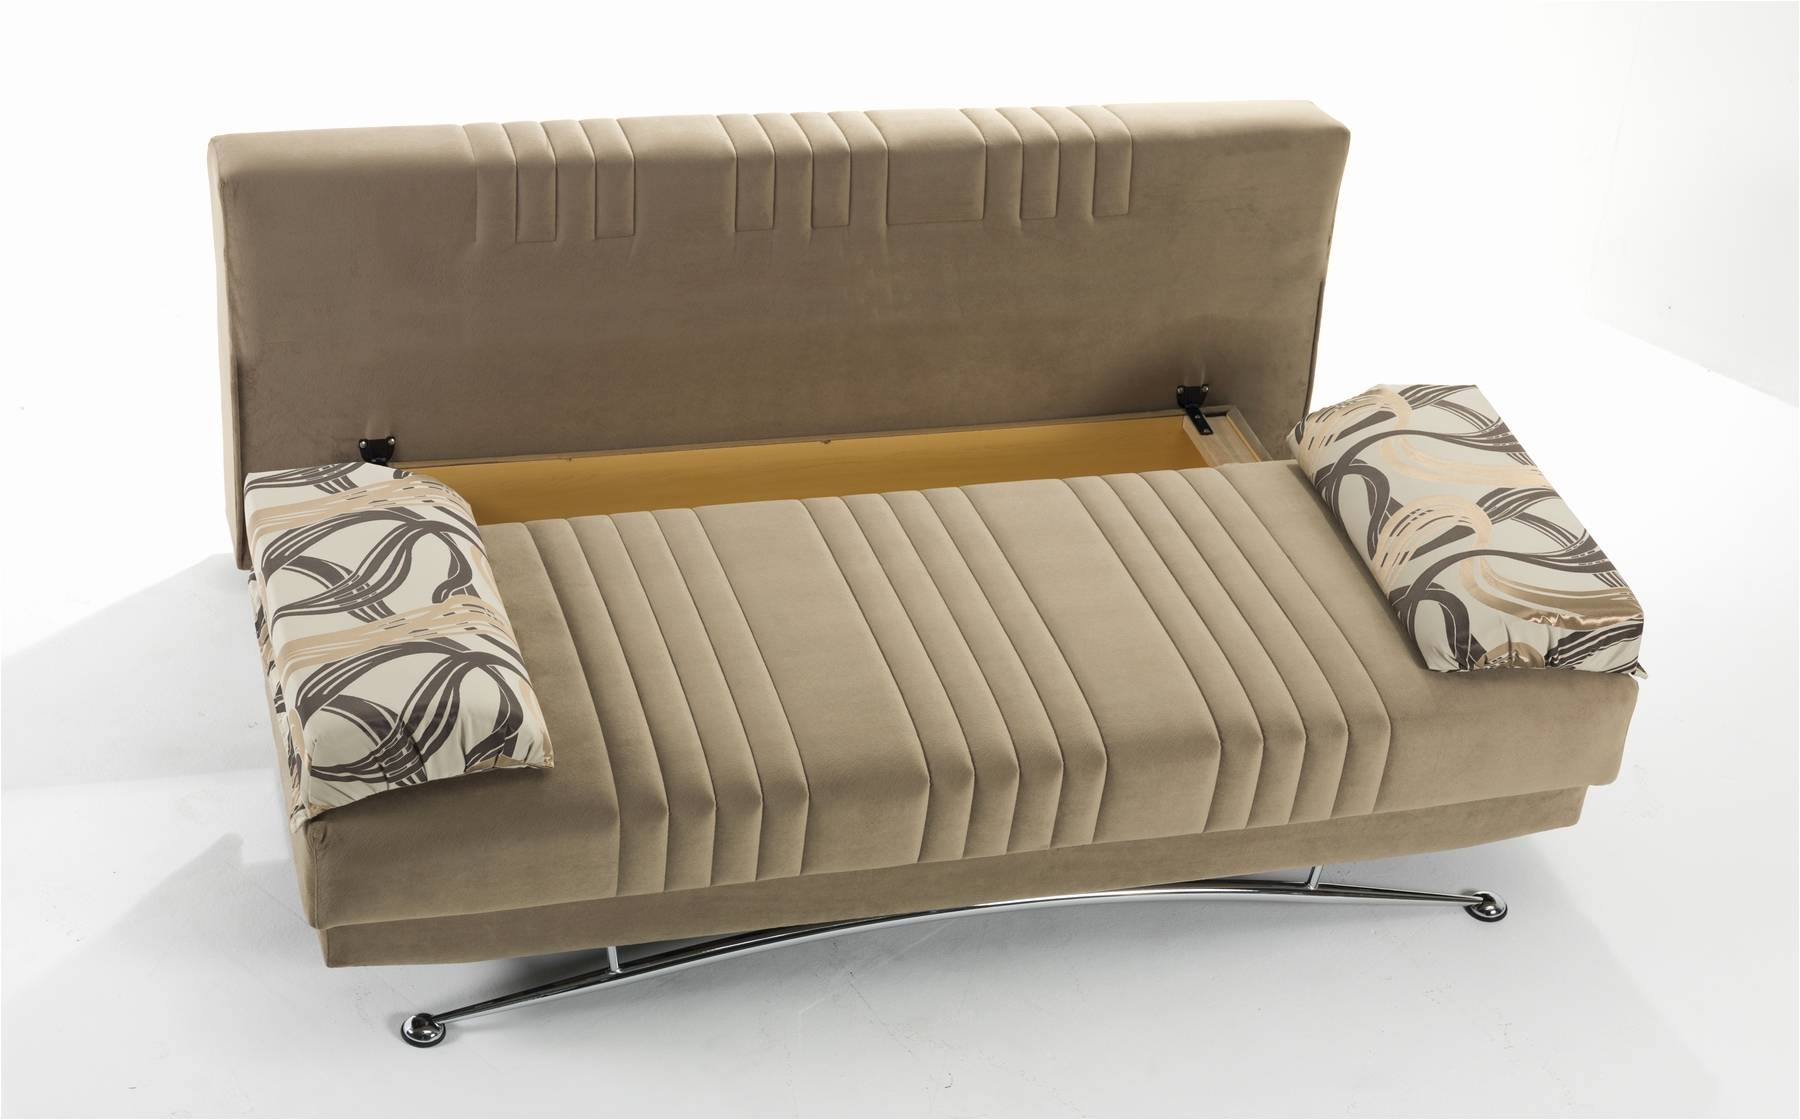 Best Of Everyday Sofa Bed | Sofa Bed Idea intended for Sofas With Support Board (Image 2 of 15)